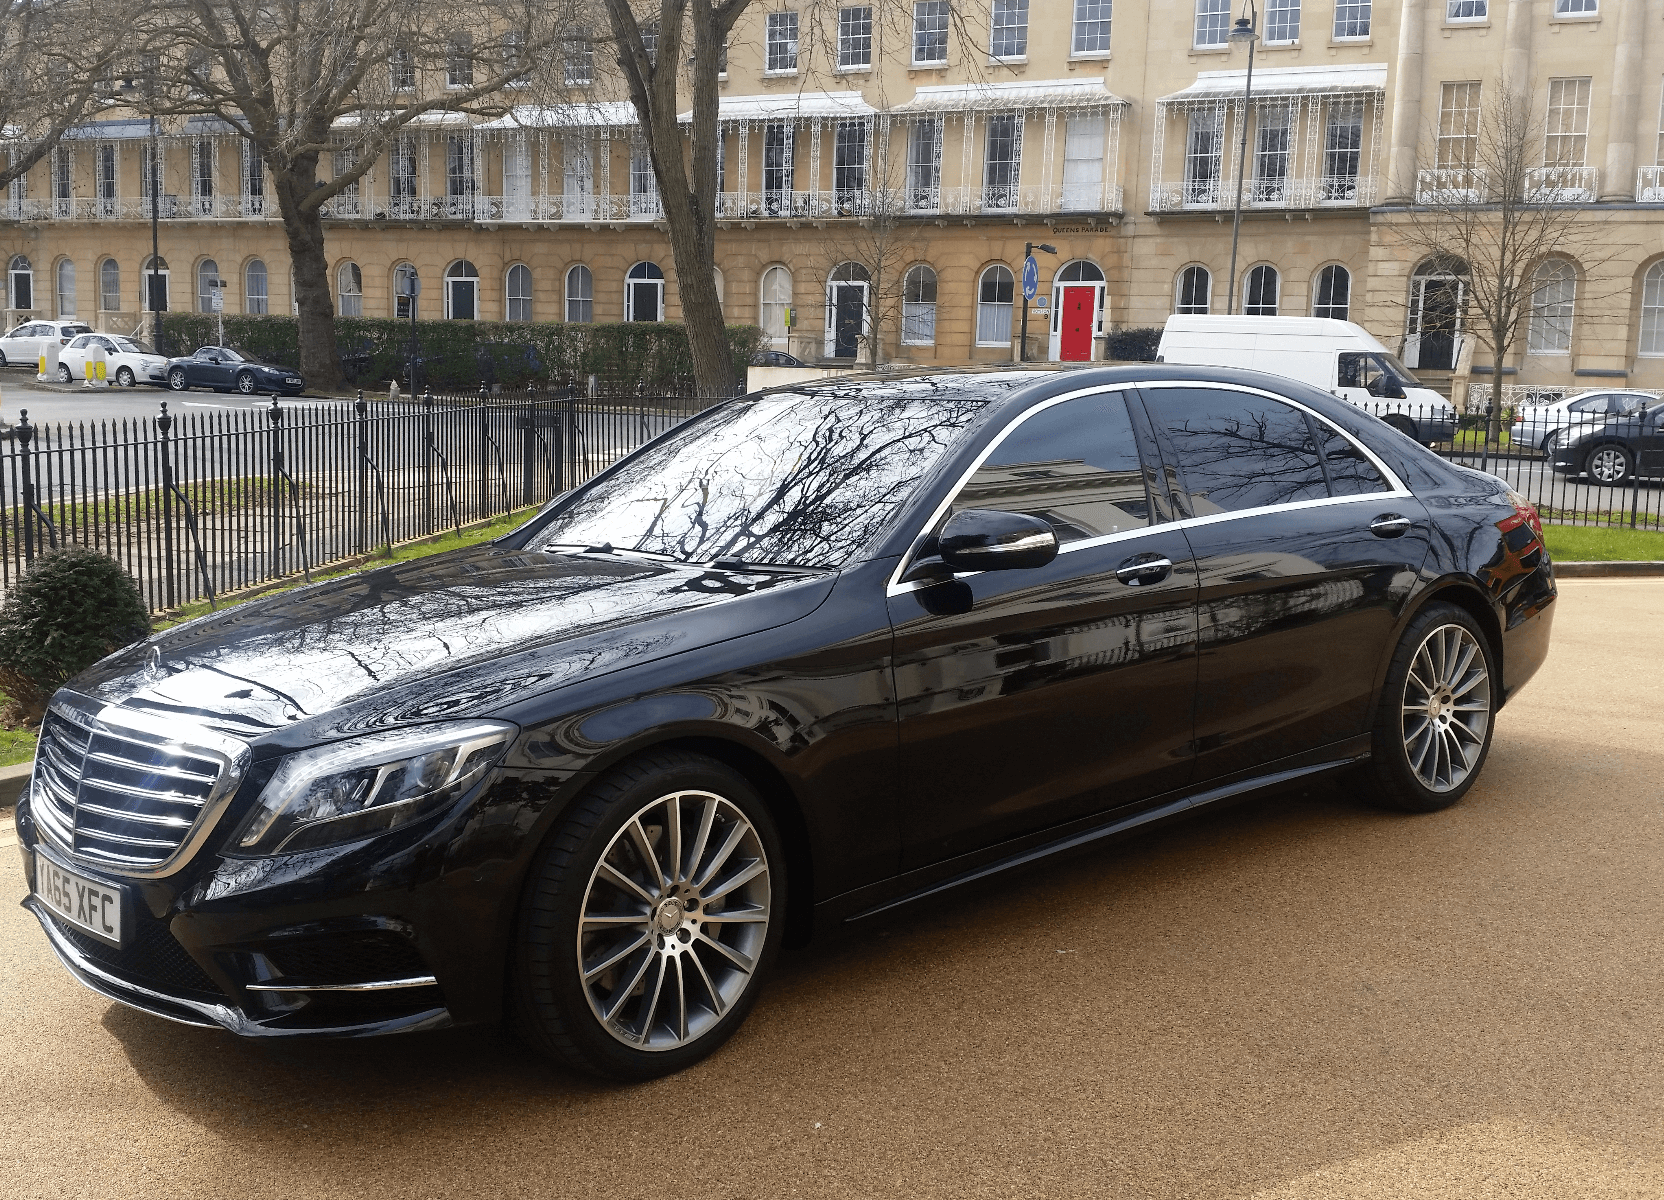 5 Common Benefits Of Oxford Airport Taxi Service